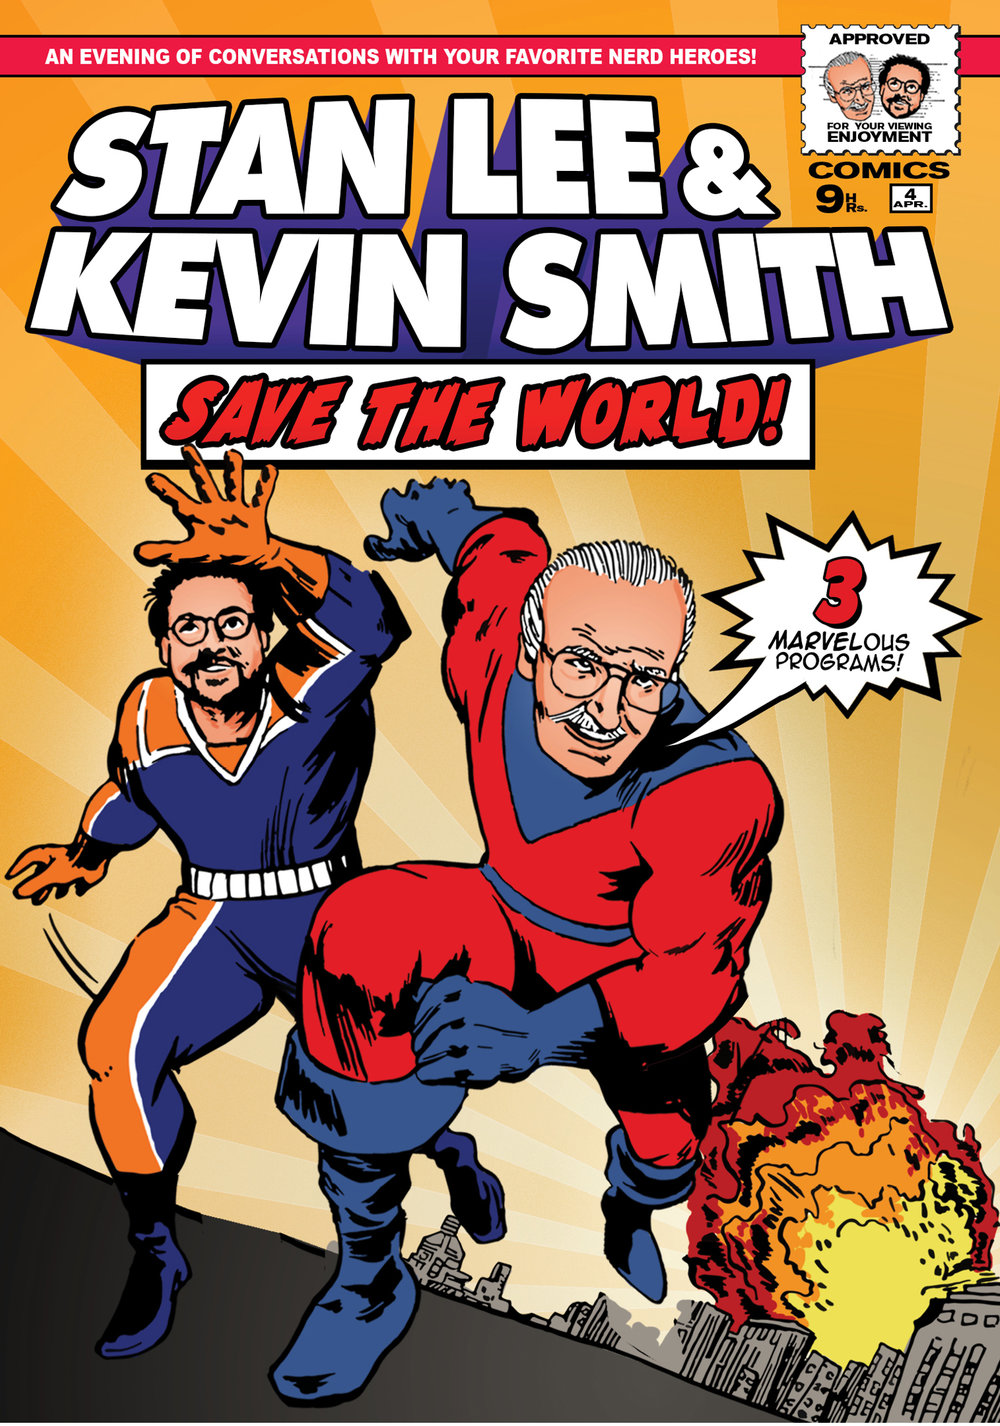 Stan Lee & Kevin Smith Save The World!